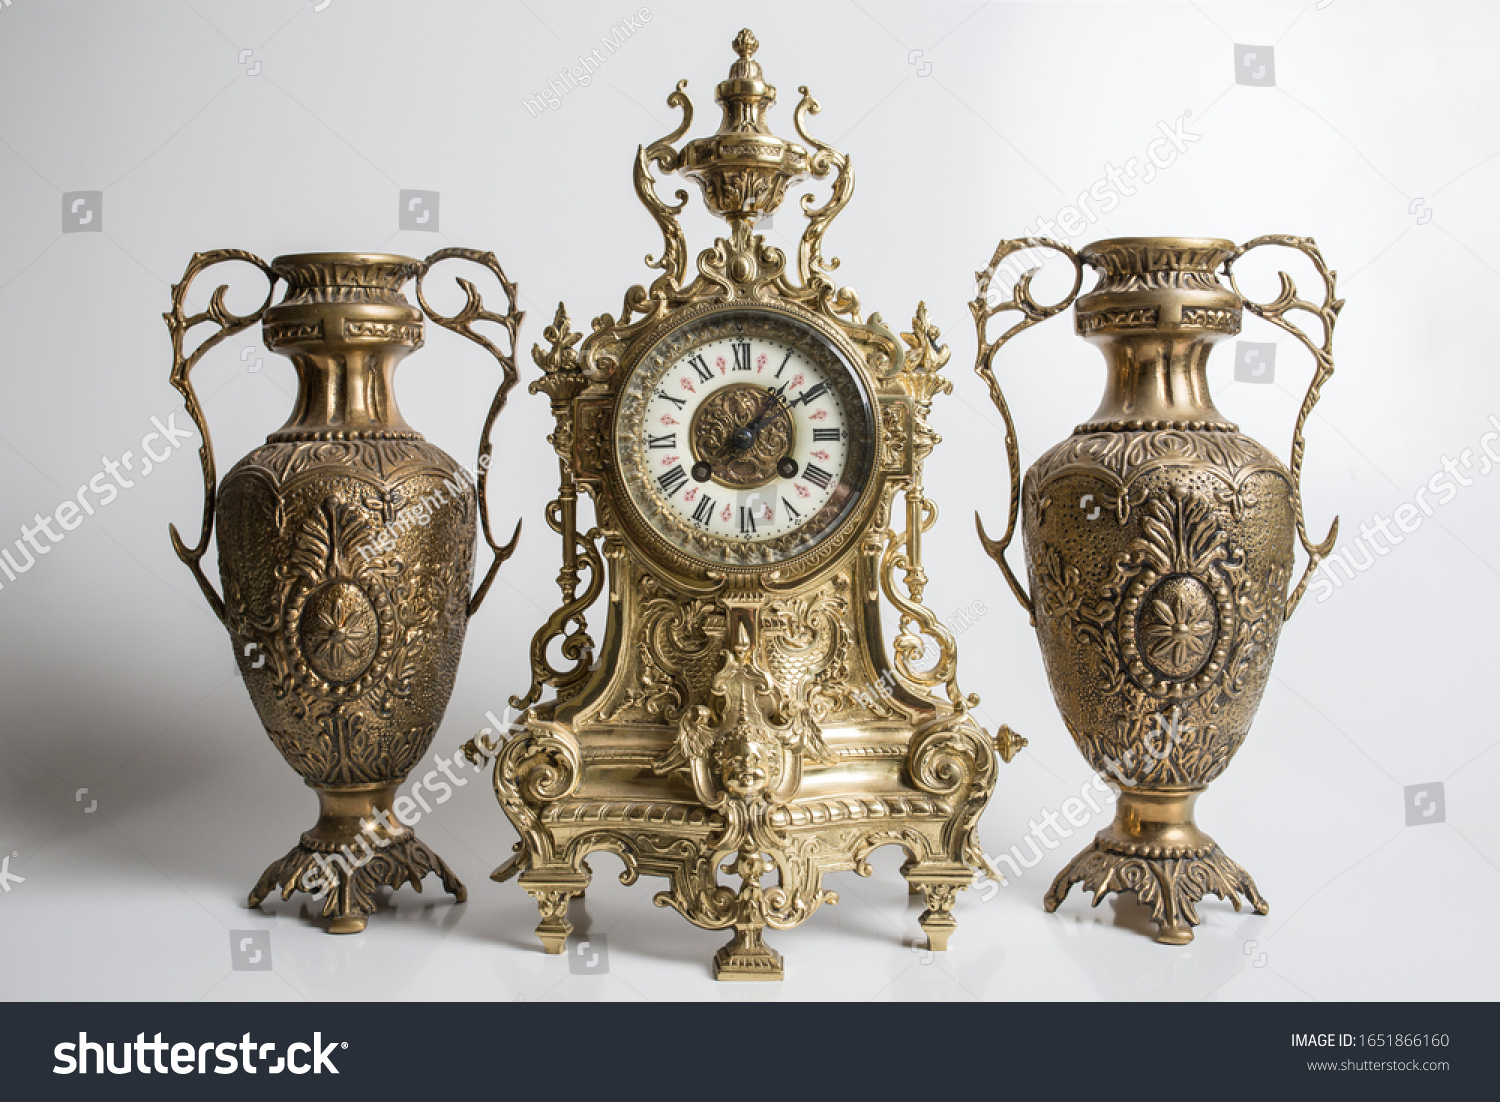 bronze amphorae and clock on a white background, antique vases and clock studio photo, antique clock and two antique vessels,  #1651866160